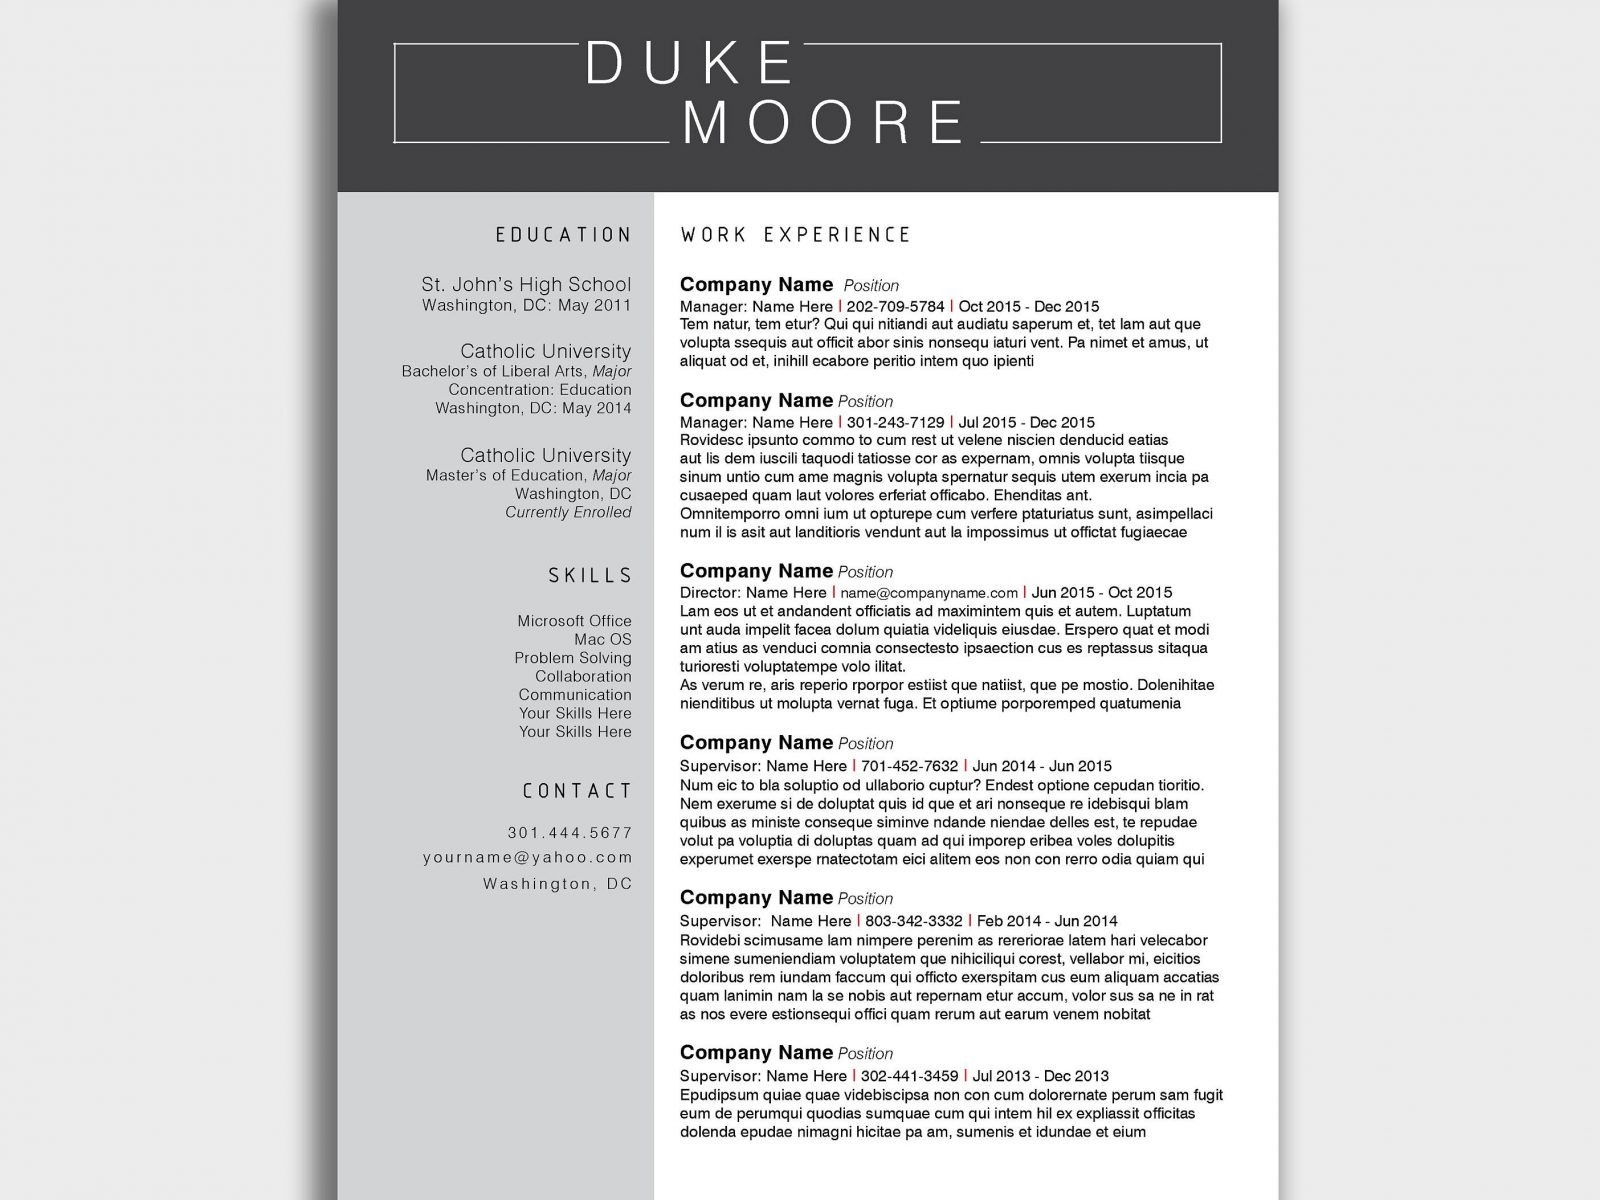 Resume Template for Supervisor Position - Fun Resume Templates Elegant Amazing Resume Templates Fresh